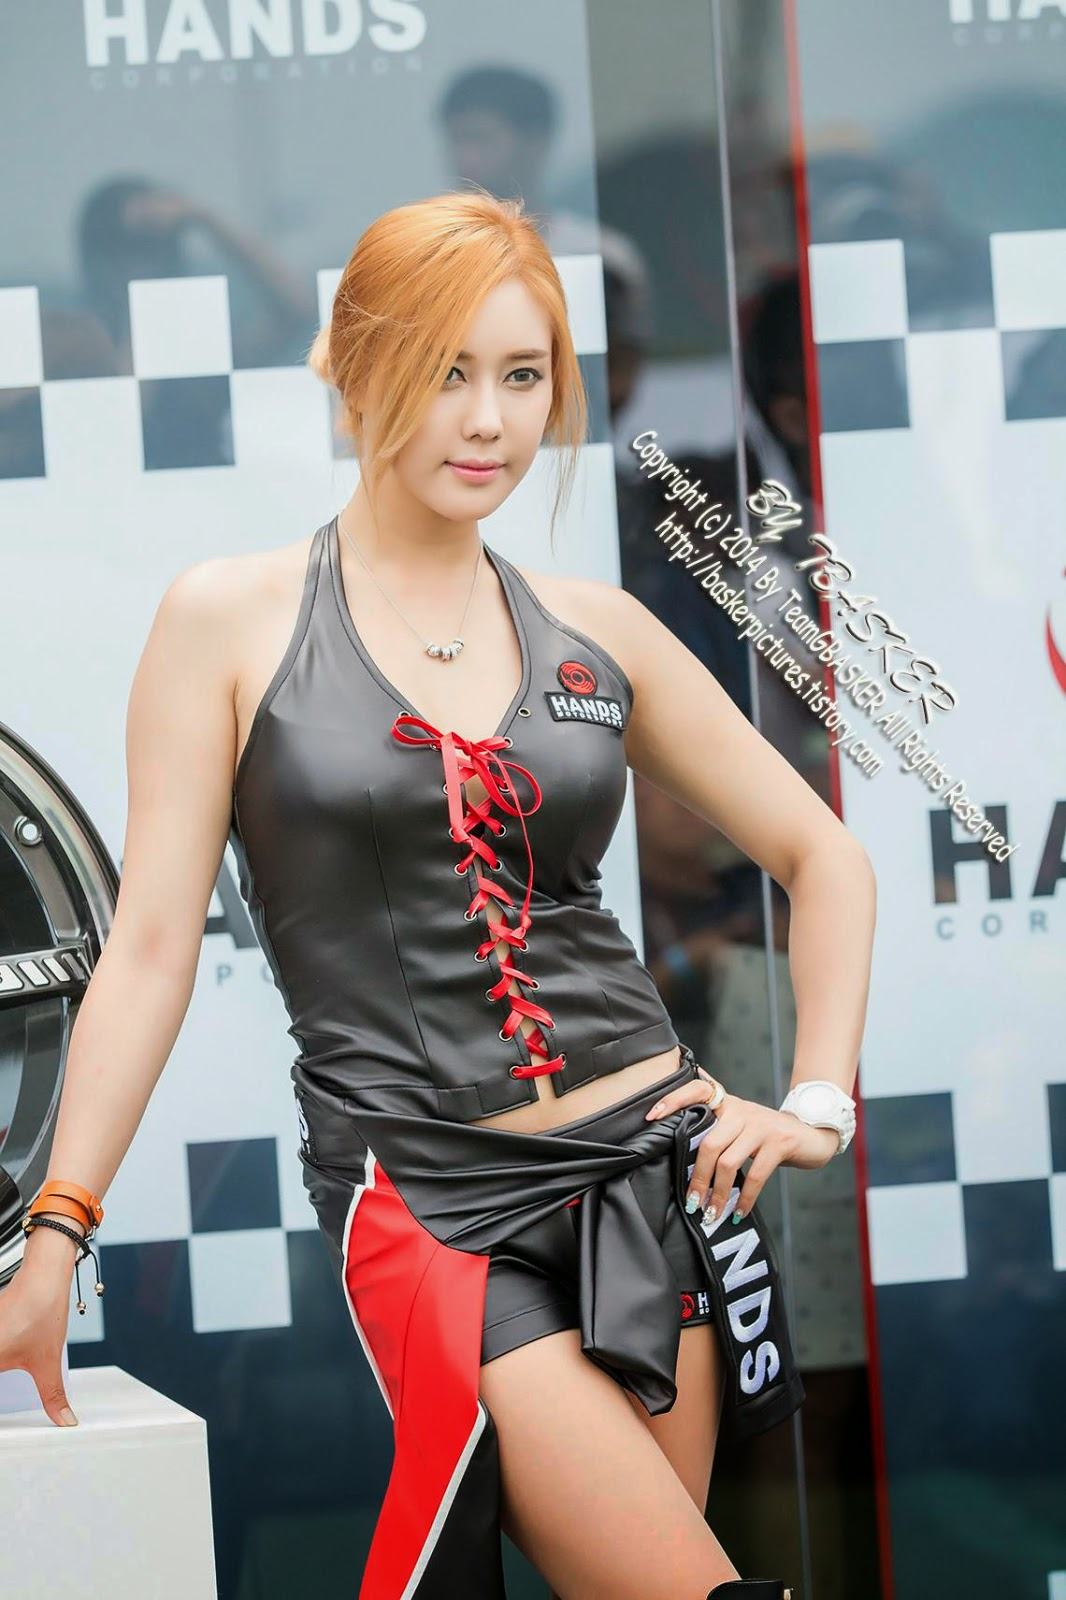 5 Kim Ha Yul - Korea Speed Festival 2014 - very cute asian girl-girlcute4u.blogspot.com